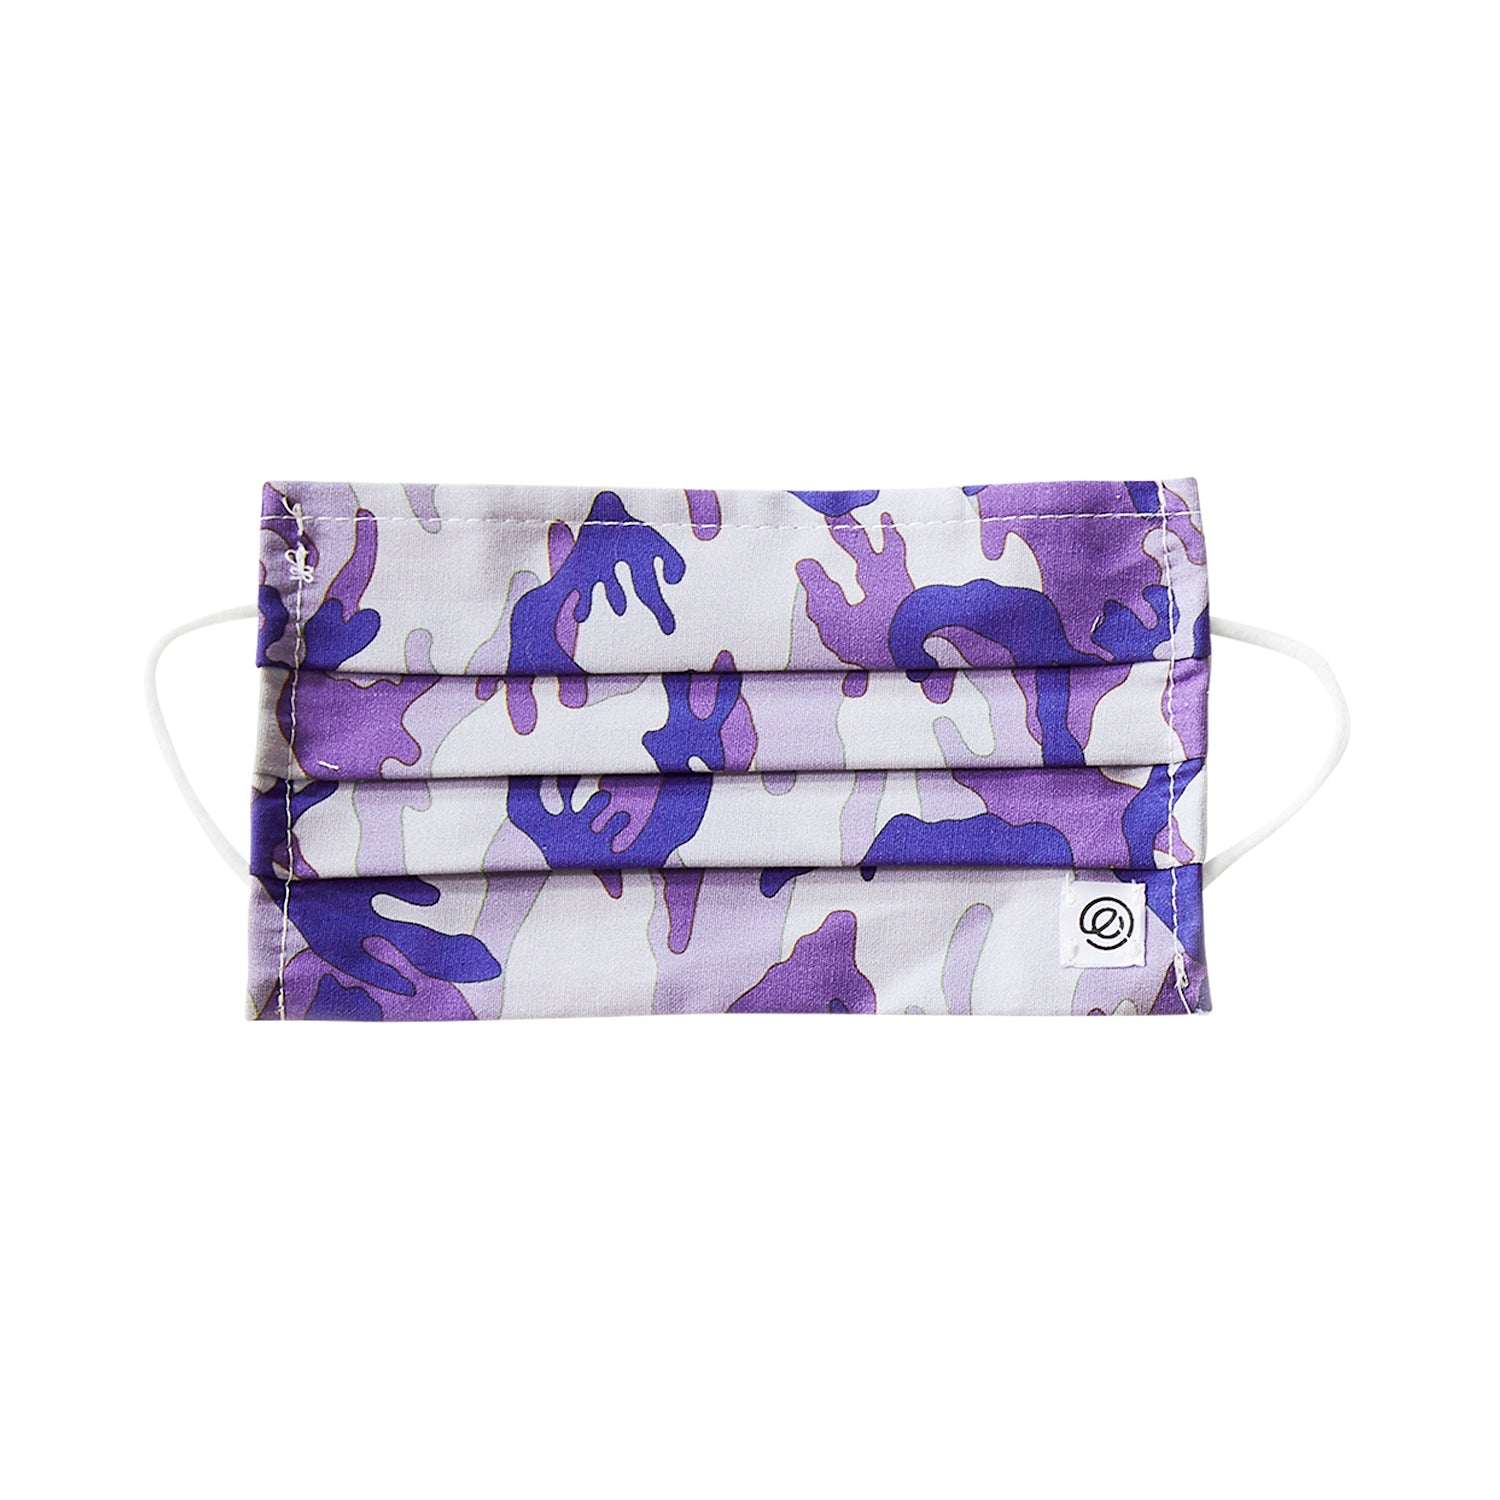 Easy Mask Pleated - Purple Camo (3 Pack)